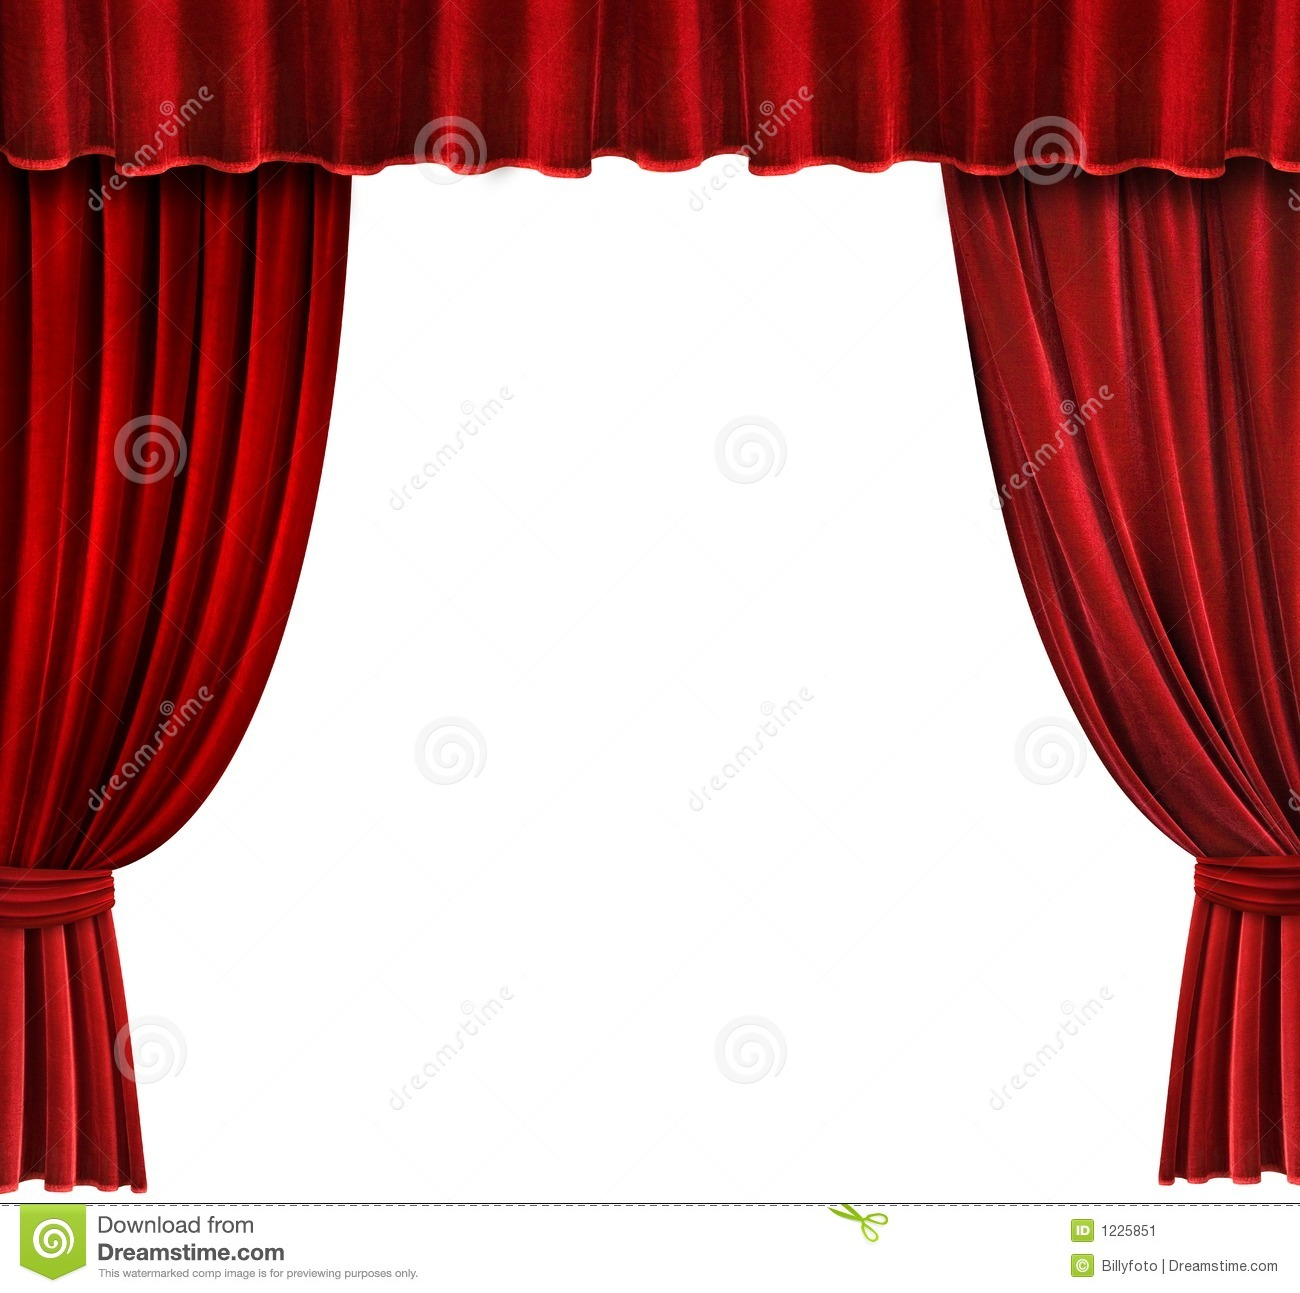 Red Velvet Theater Curtains Stock Image  Image of drapery